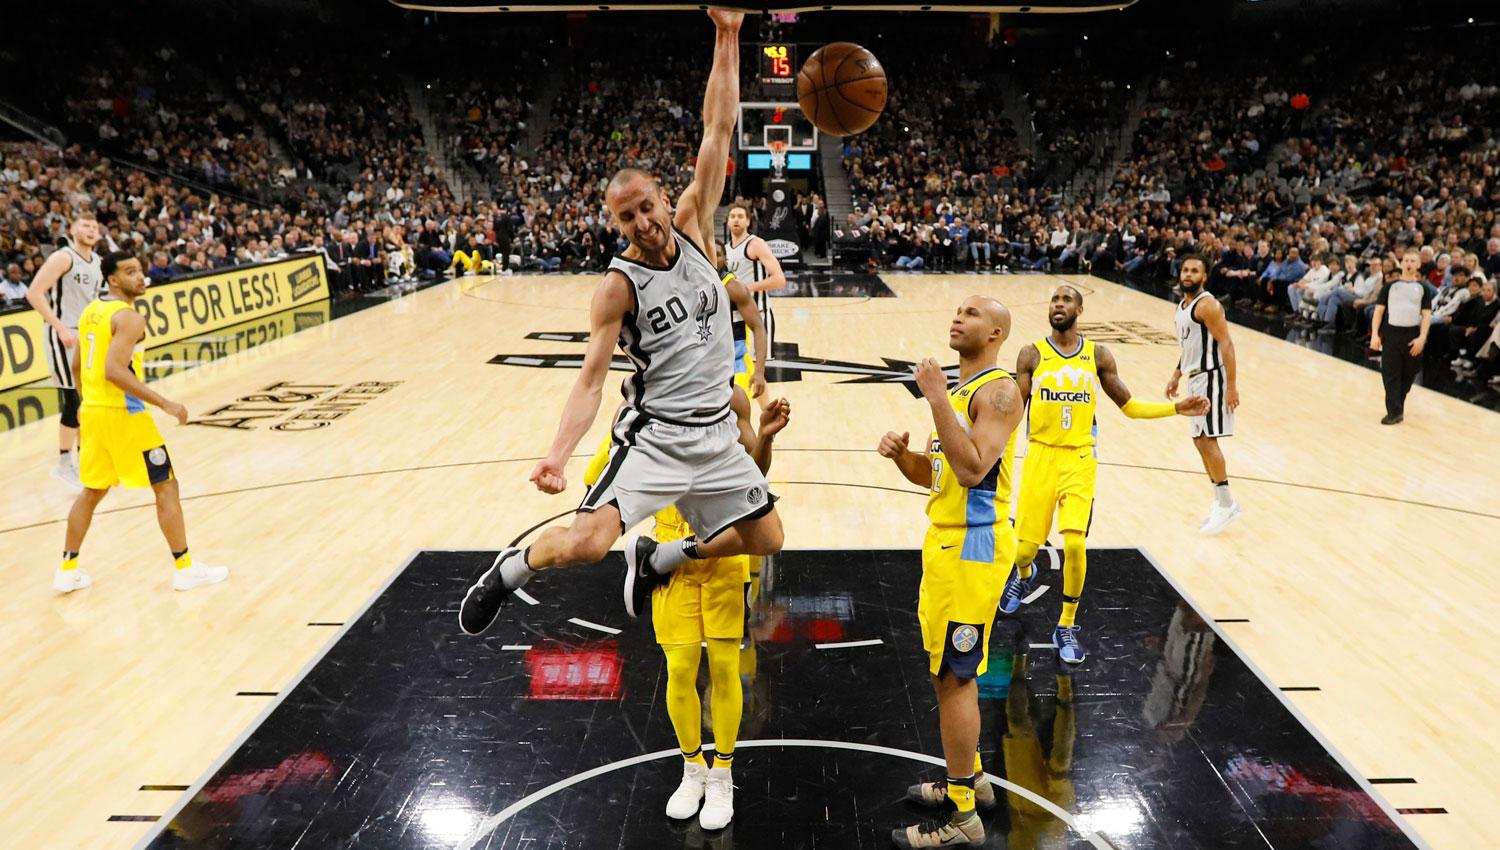 Messi quiere llevar a Ginobili al All-Star de la NBA